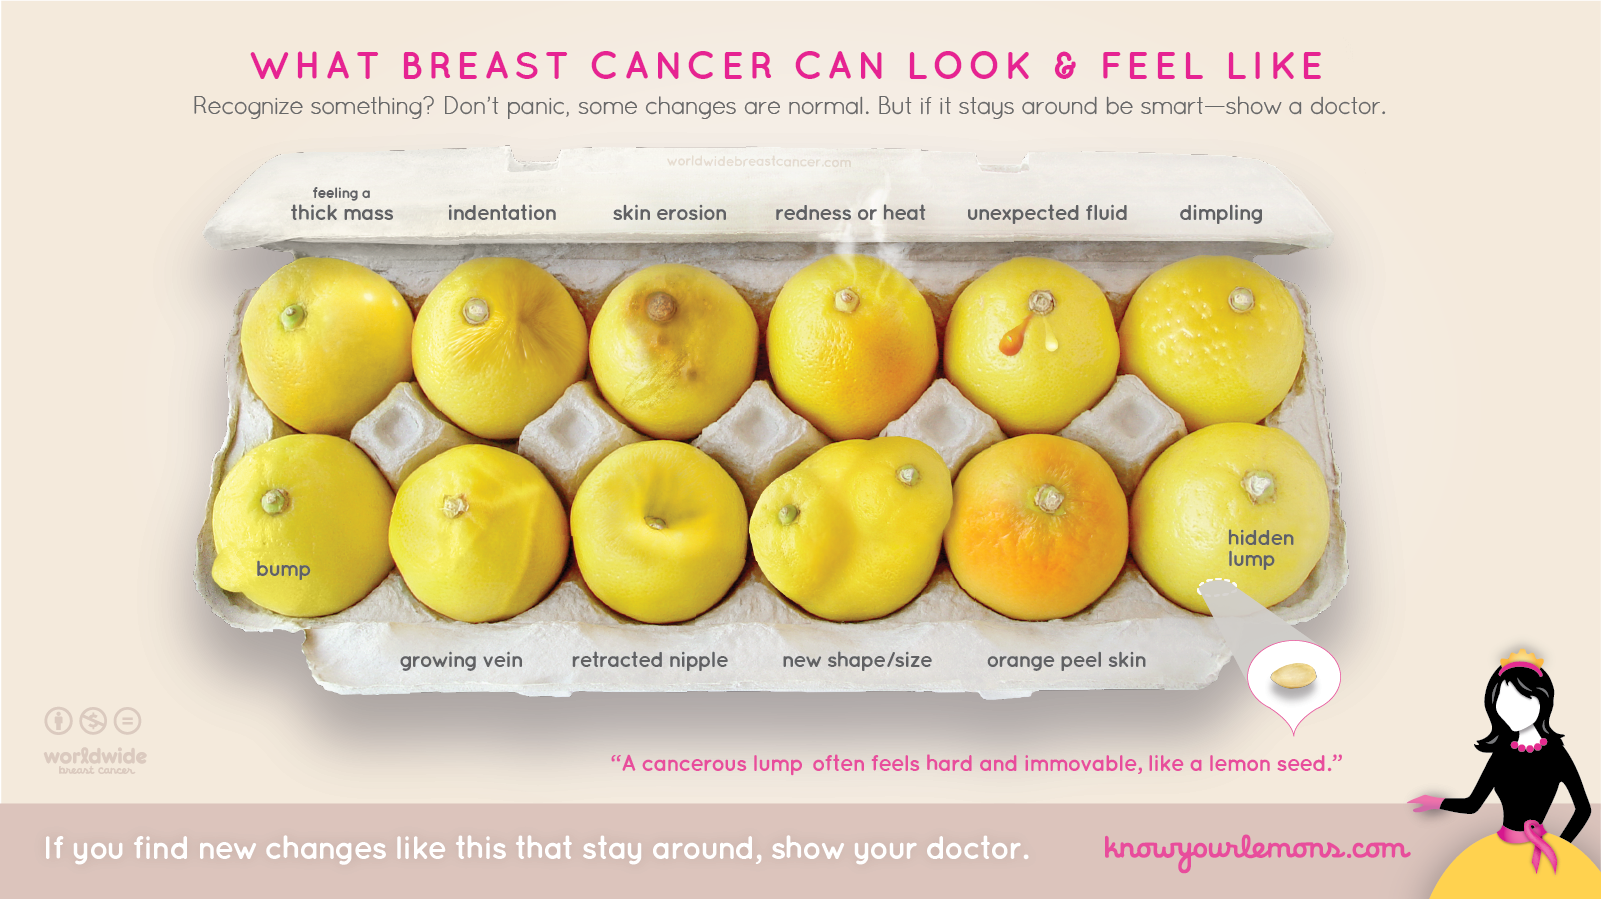 What breast cancer can look and feel like